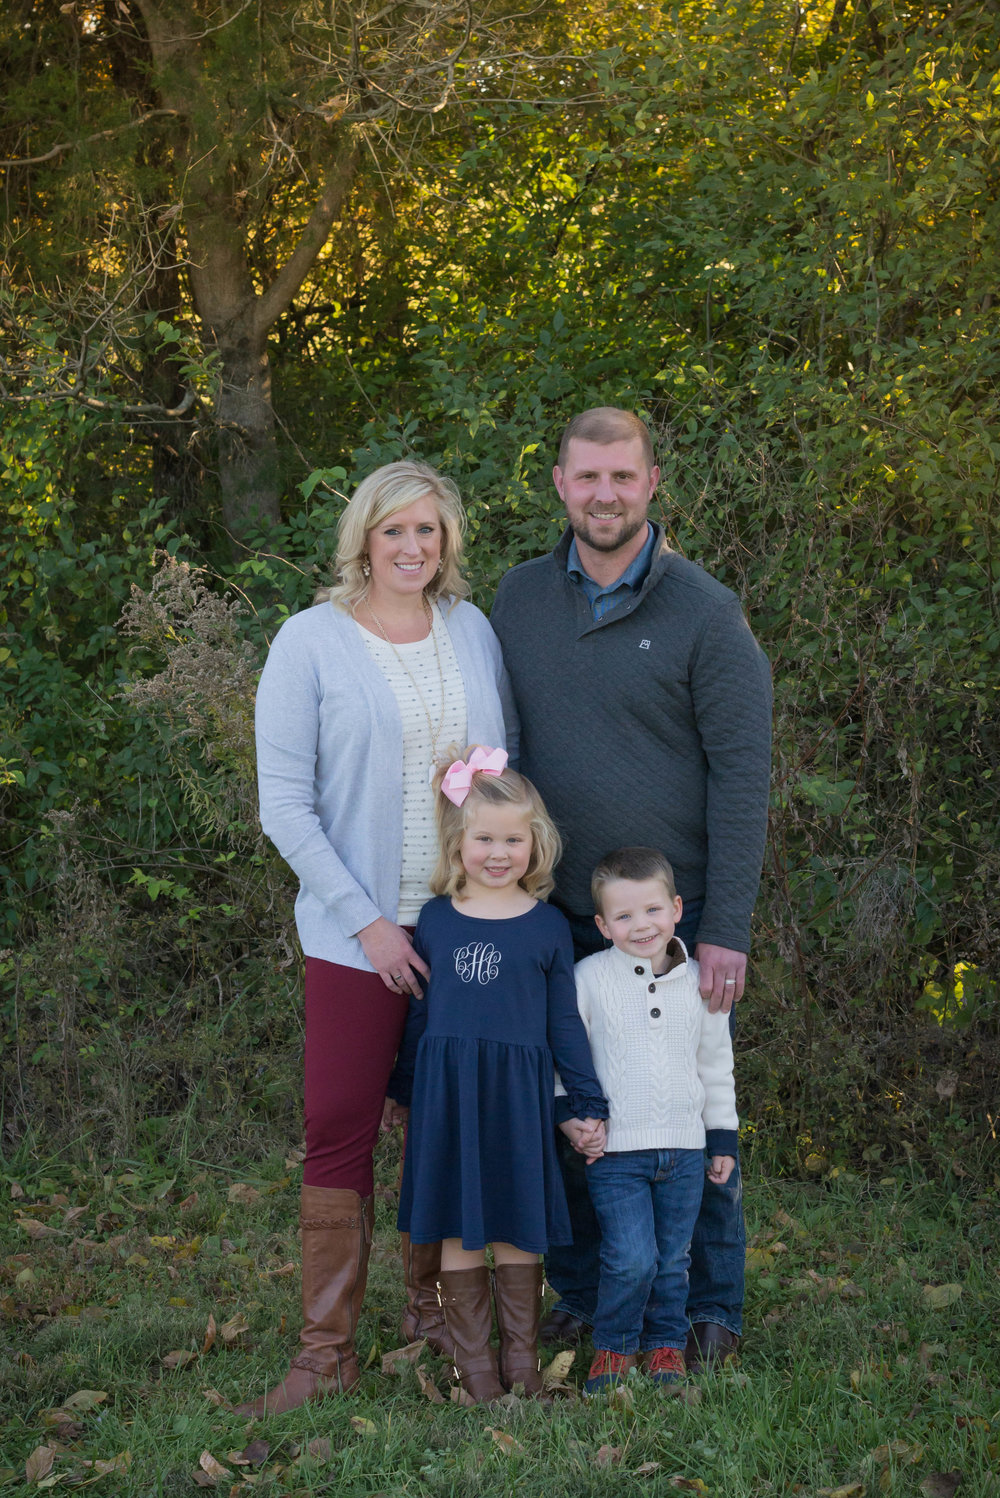 The Hall Family at their home in Fisherville, Kentucky. Fall 2018.